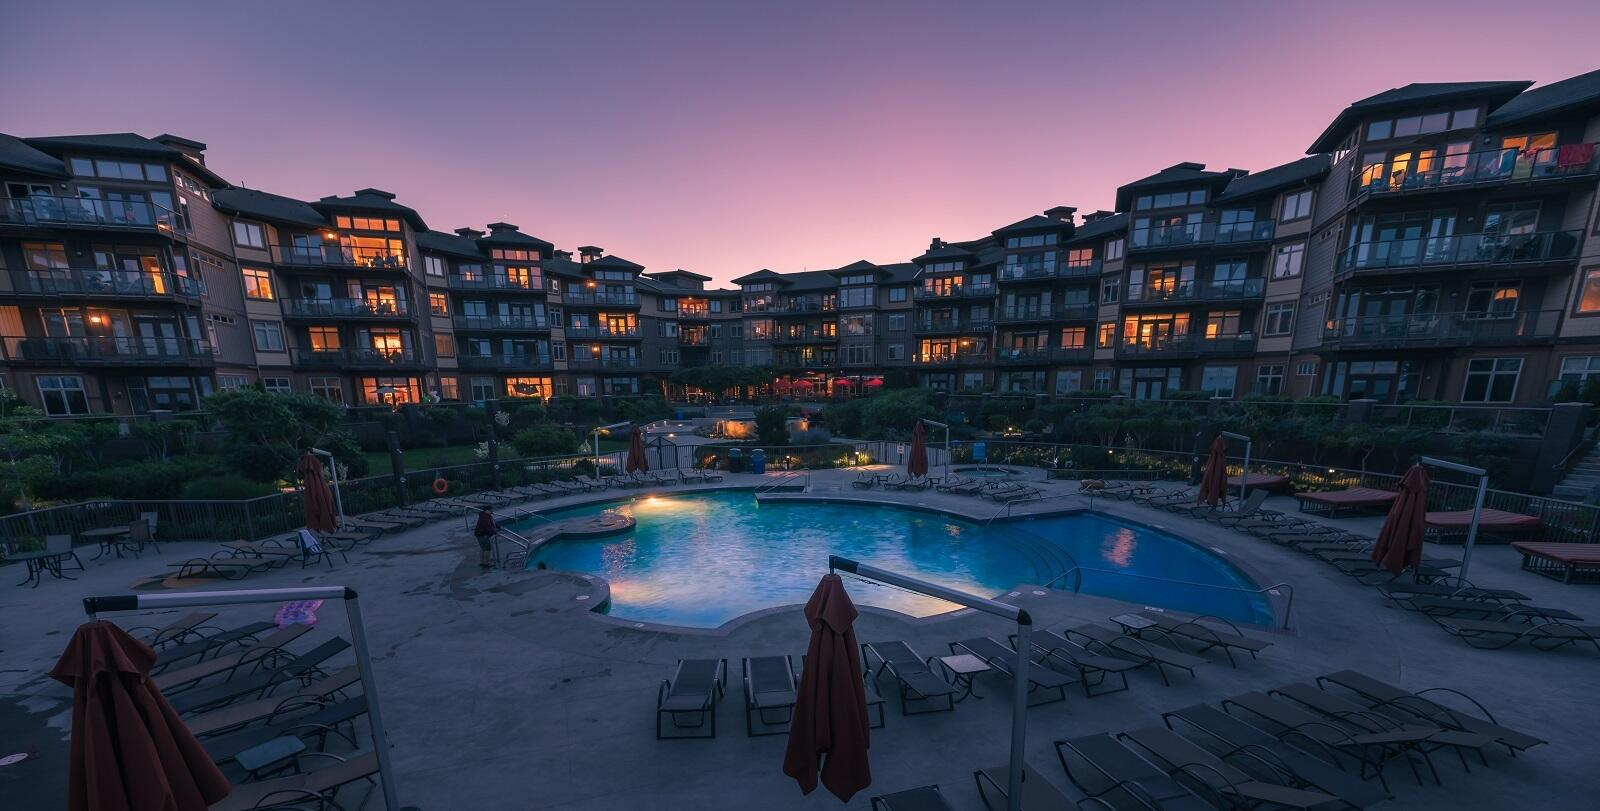 Exterior photo of inner cove and pool at sunset